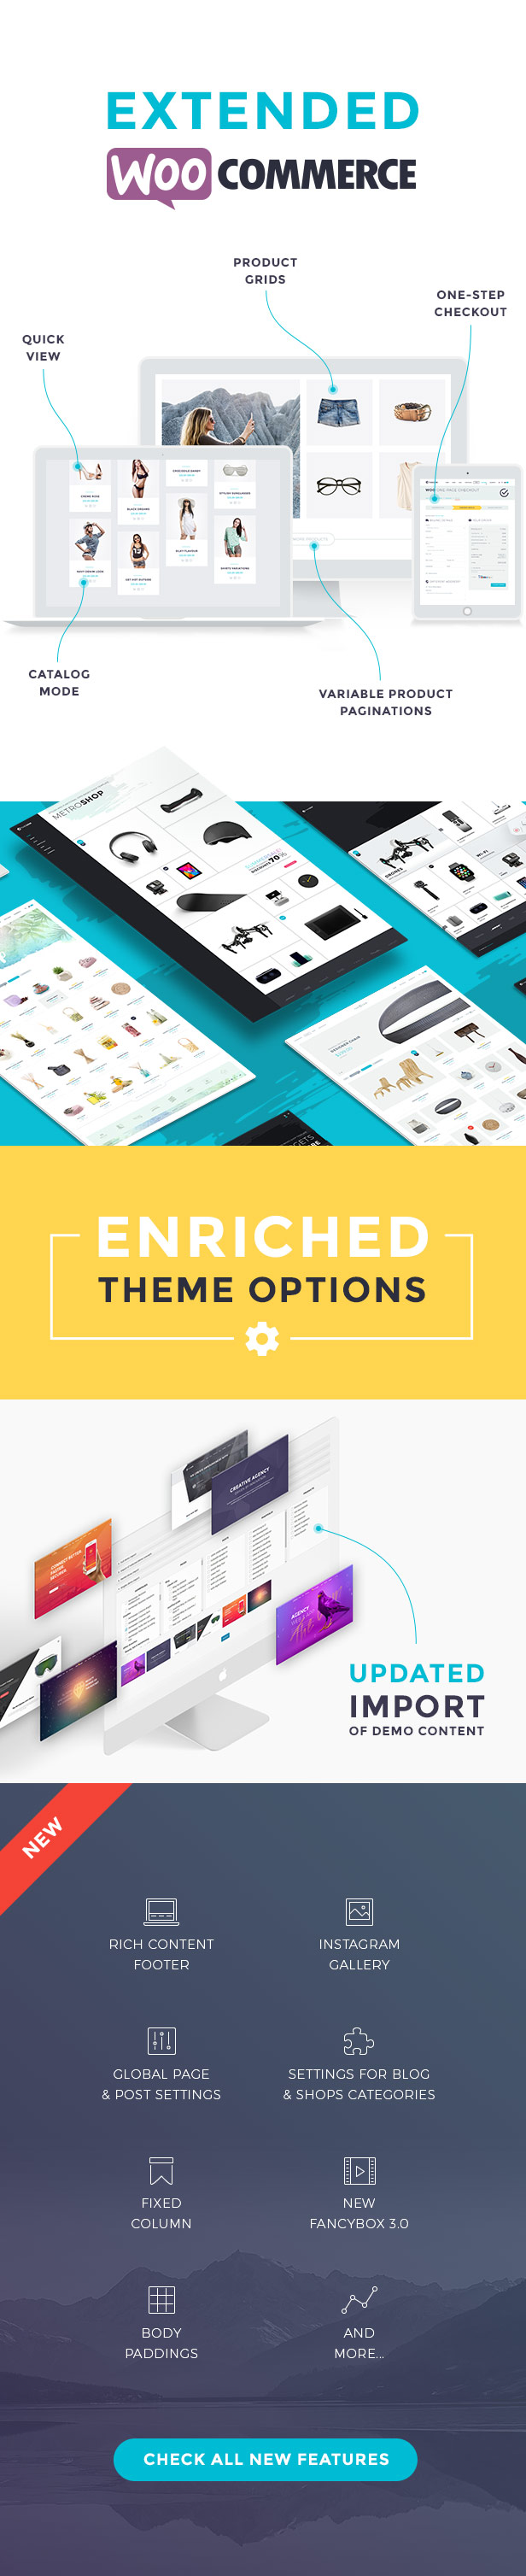 TheGem - Creative Multi-Purpose High-Performance WordPress Theme - 6